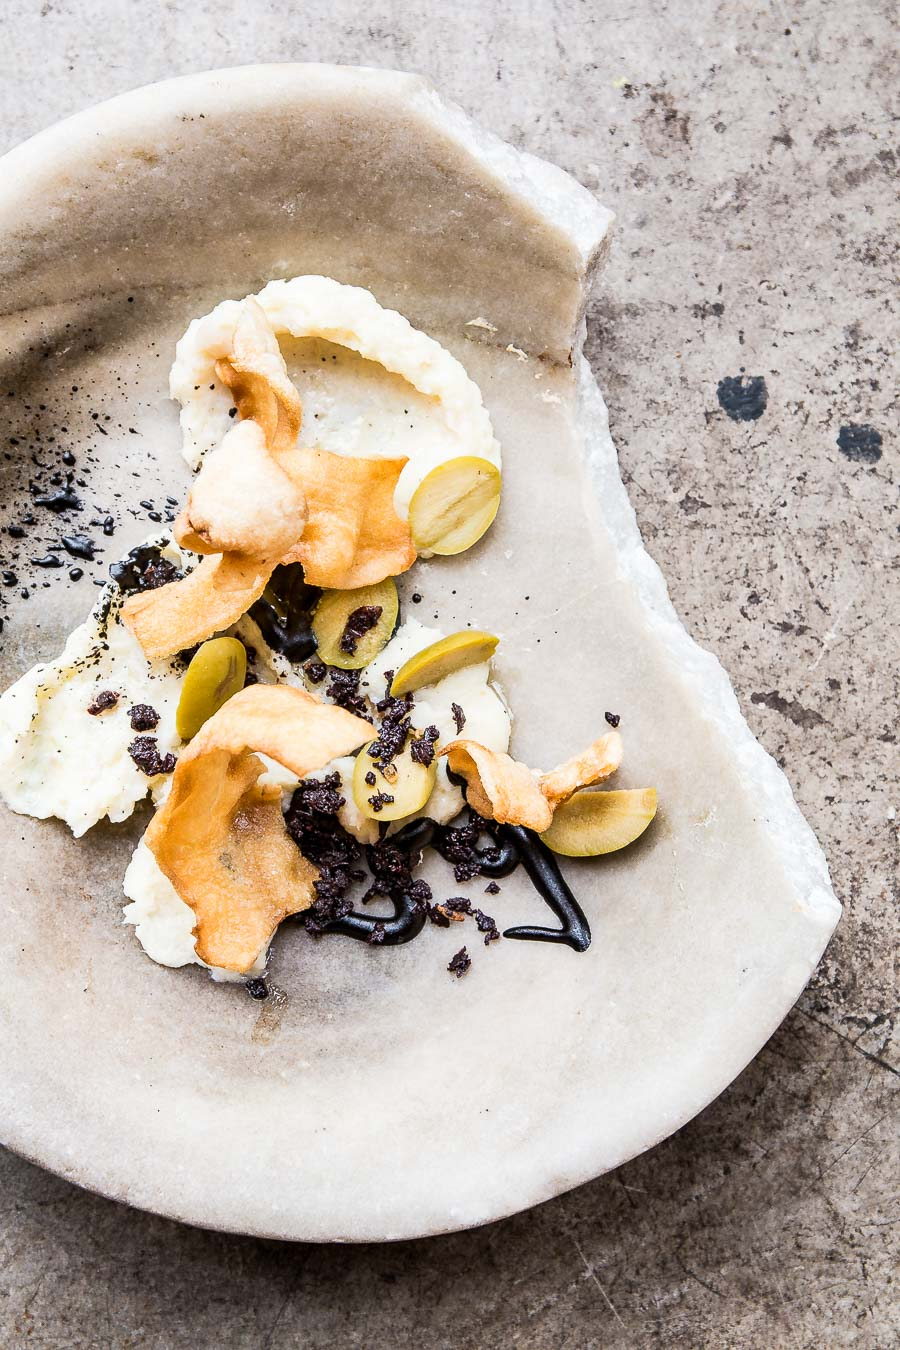 Dark coloured squid ink, prawn crackers and sliced olive sit on a partially broken, thick, stone bowl with restaurant styling and a stone floor tile as the background